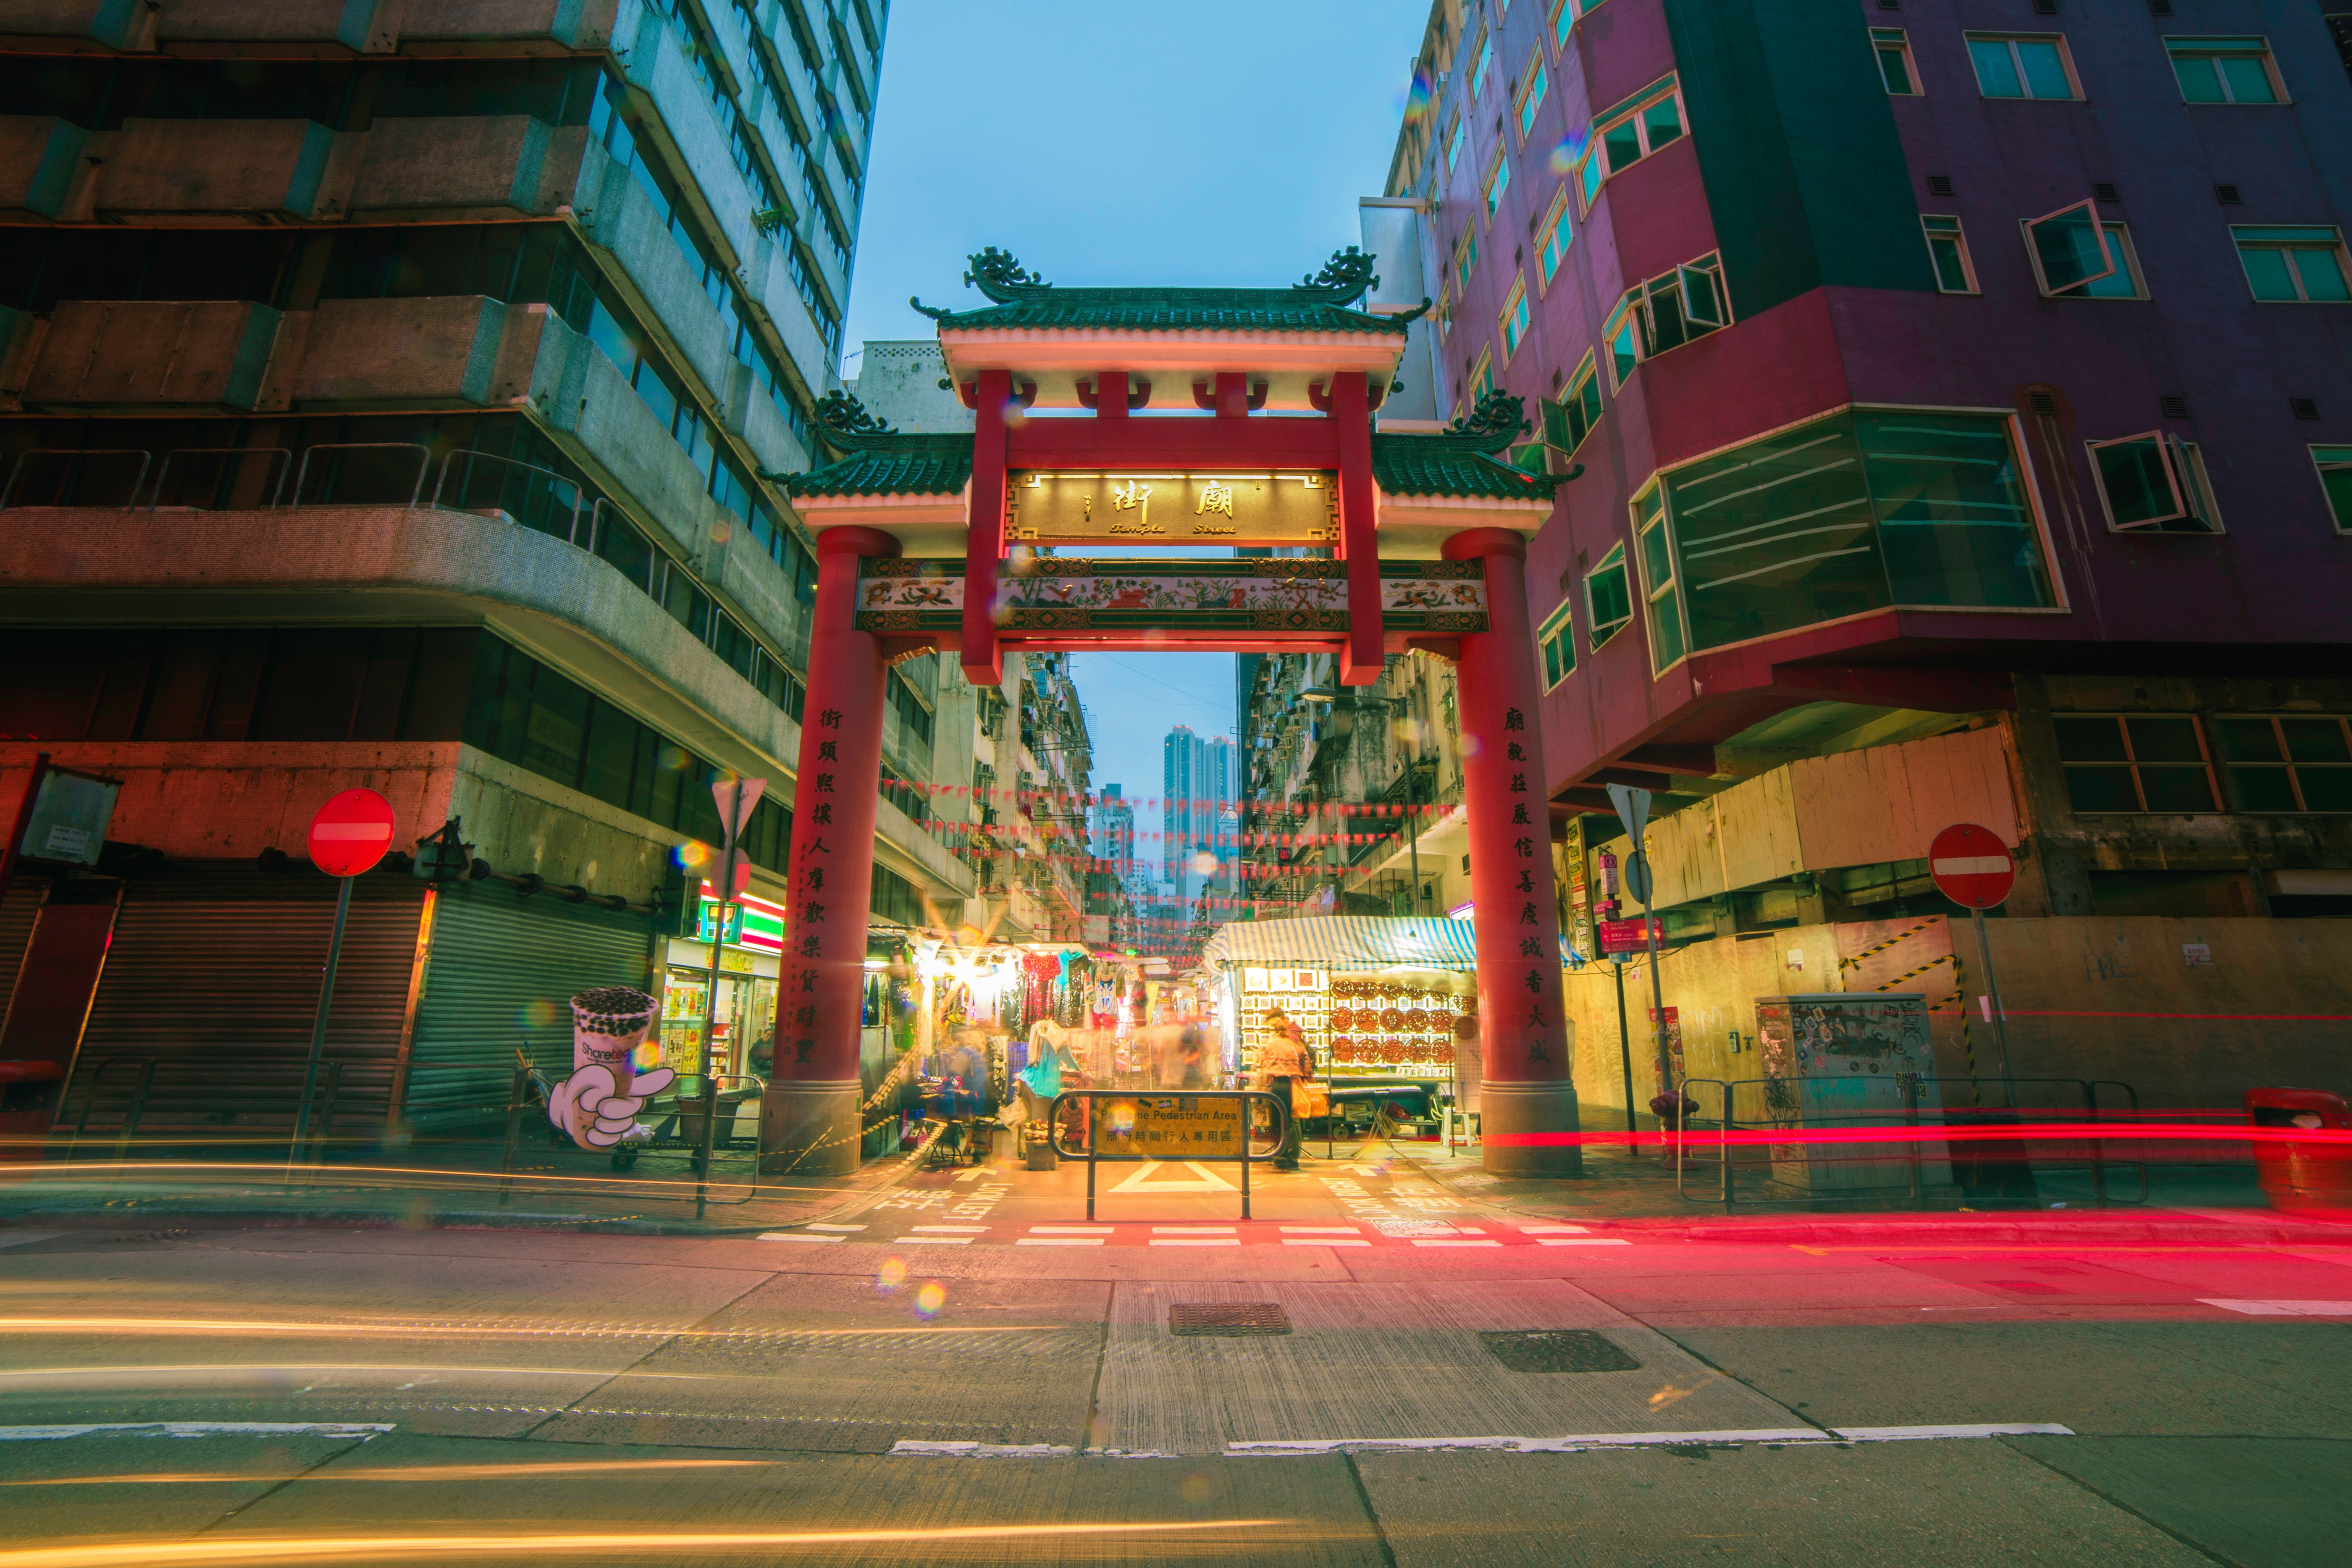 Timelapse Photo of China Town, Architecture, Road, Market, Modern, HQ Photo